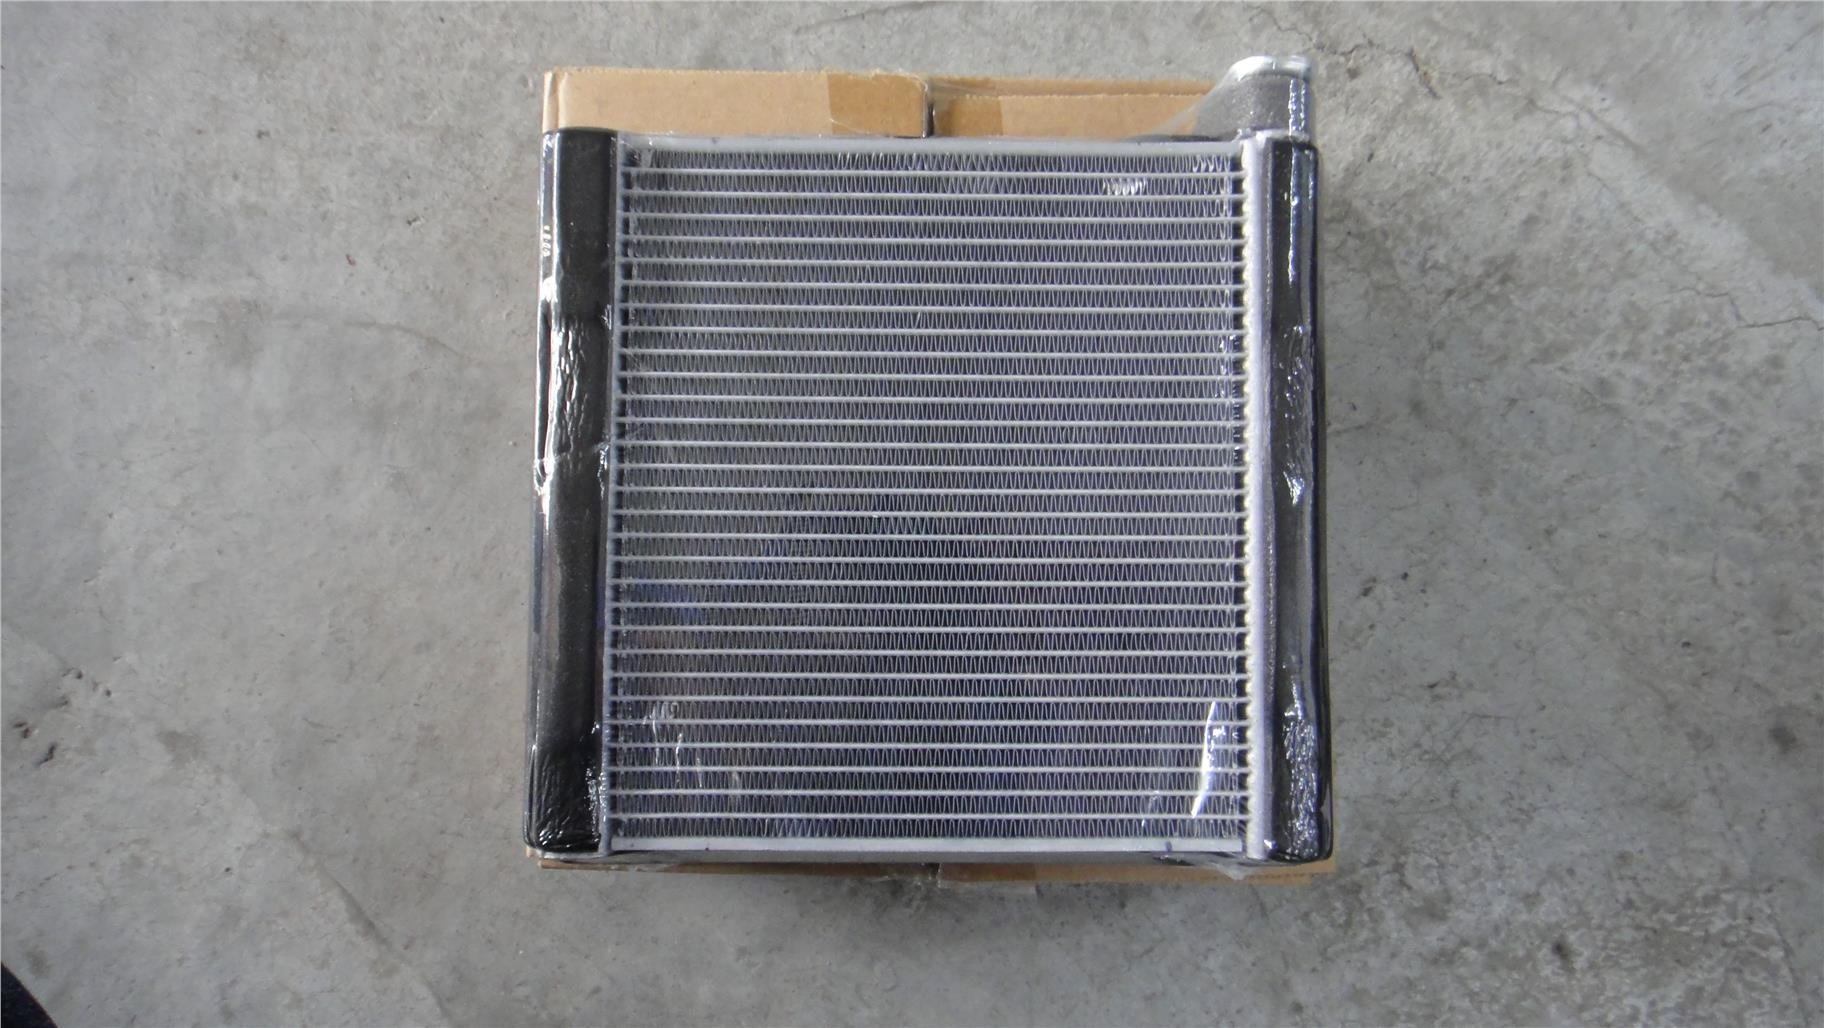 Nissan Grand Livina Air-Cond Evaporator/Cooling Coil